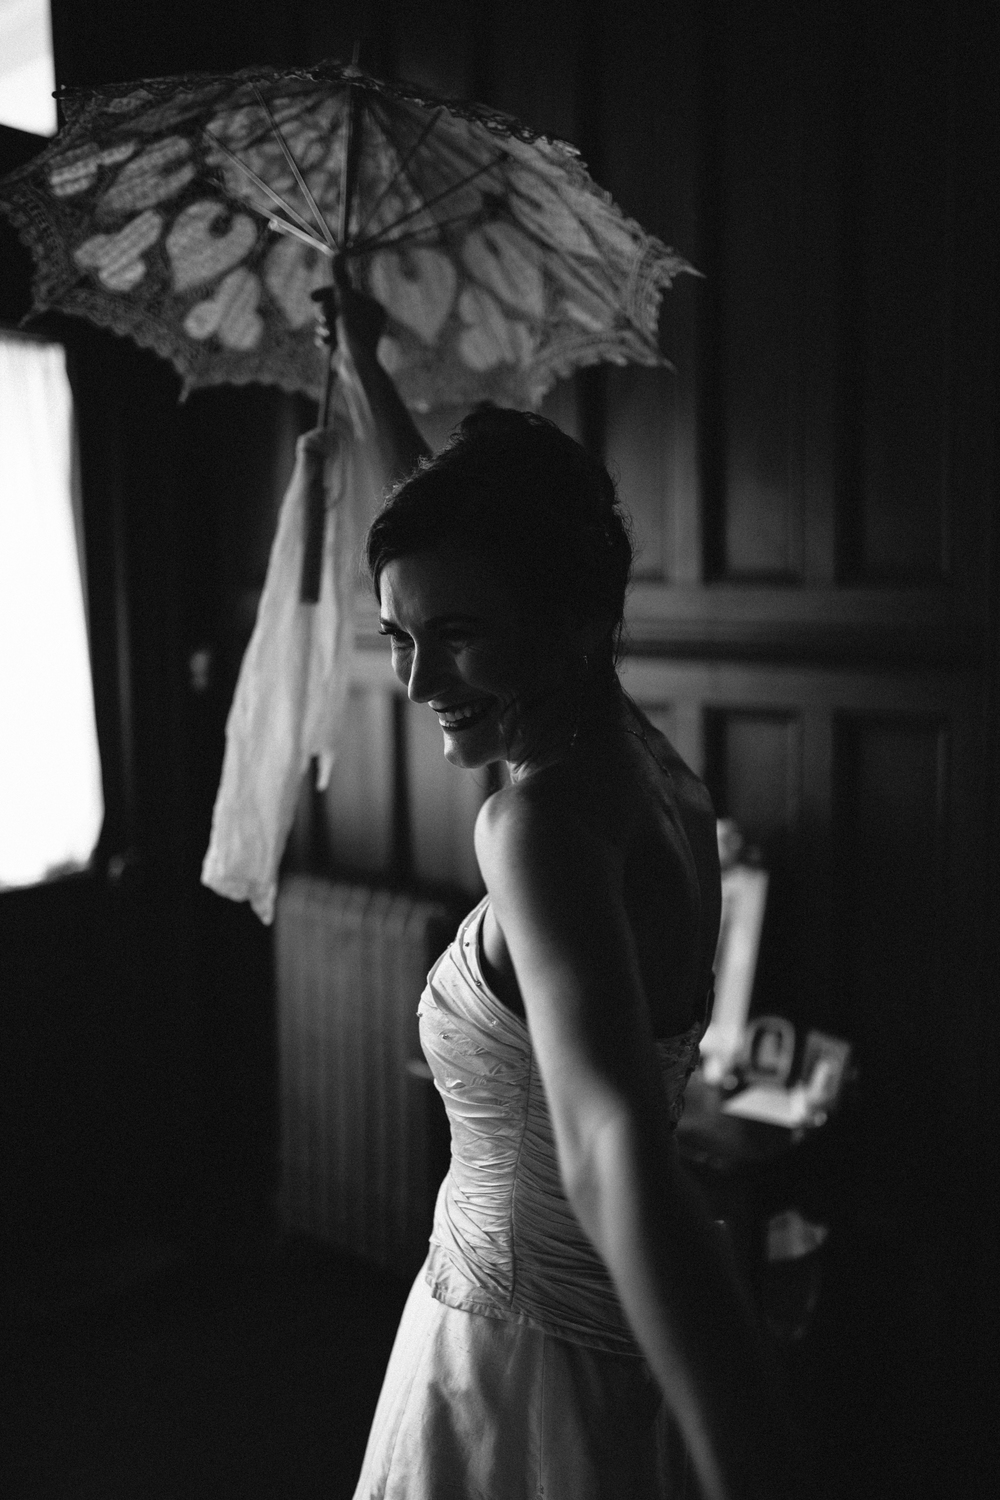 nola-wedding-89.jpg